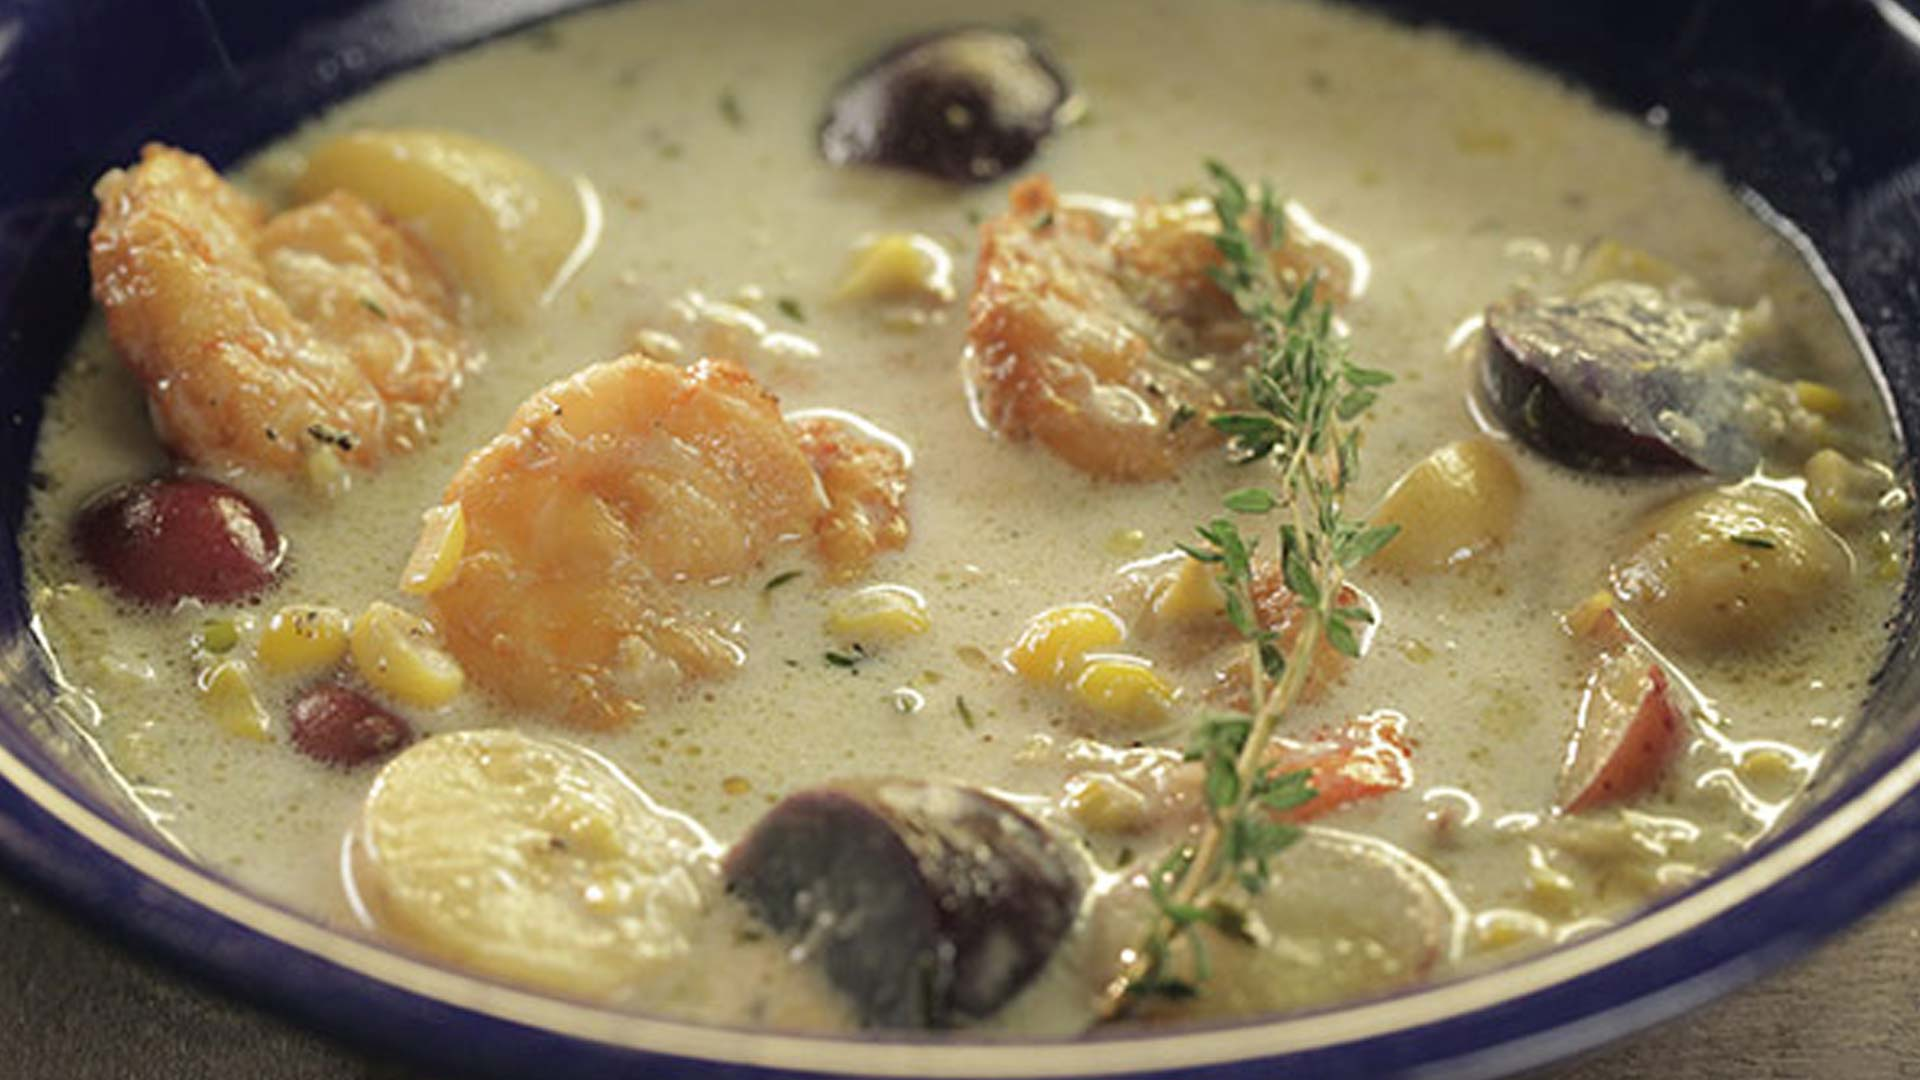 Stephen Raichlen's Smoked Shrimp and Corn Chowder